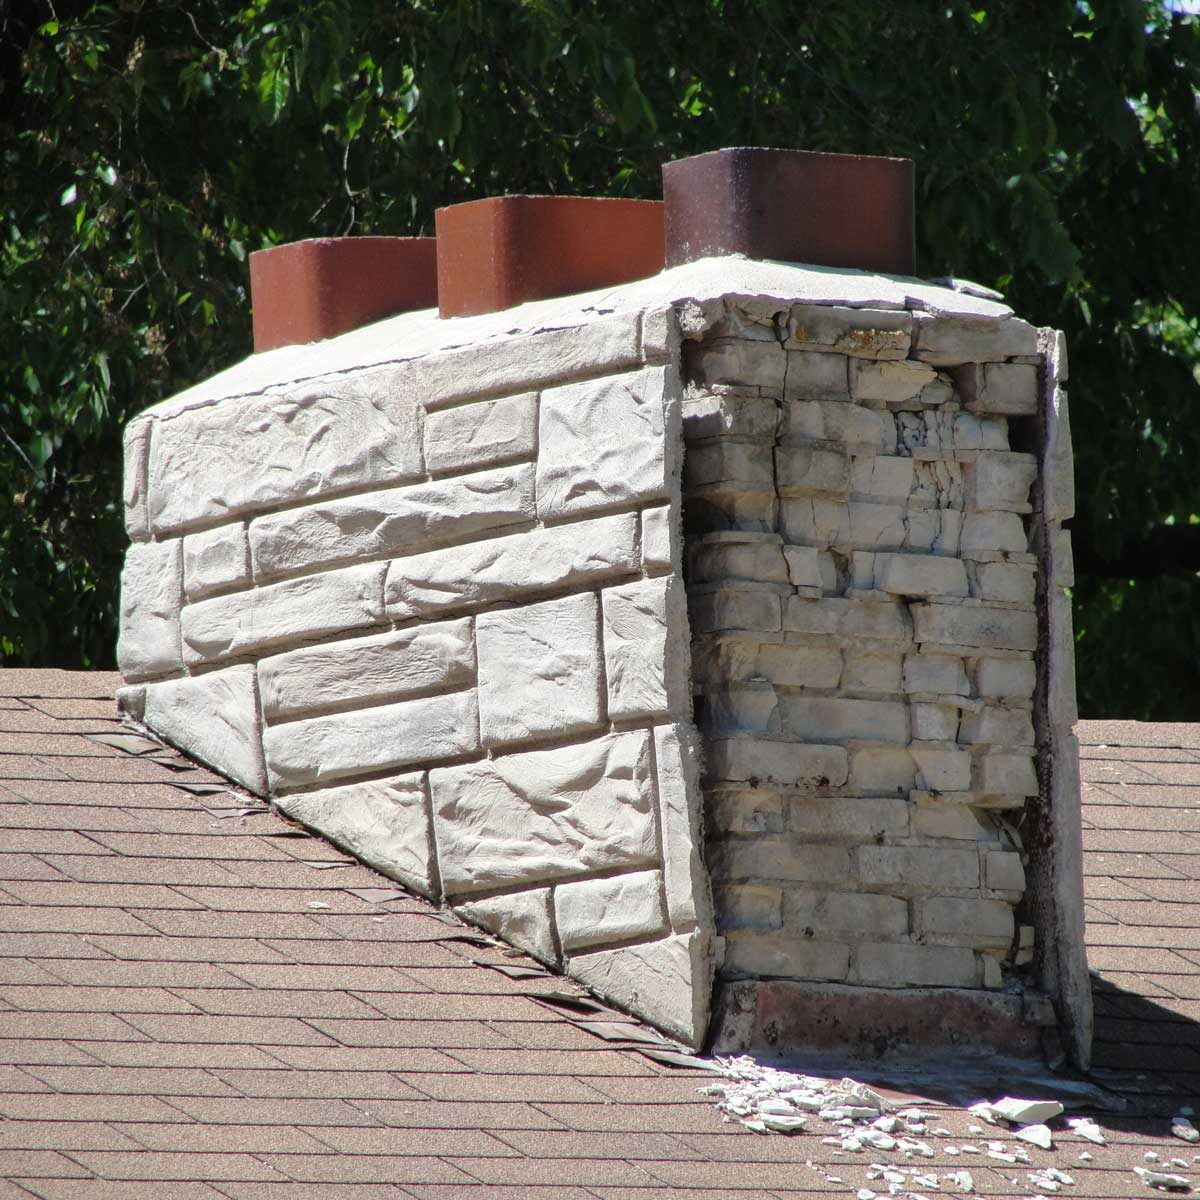 Chimney-with-facade-falling-apart